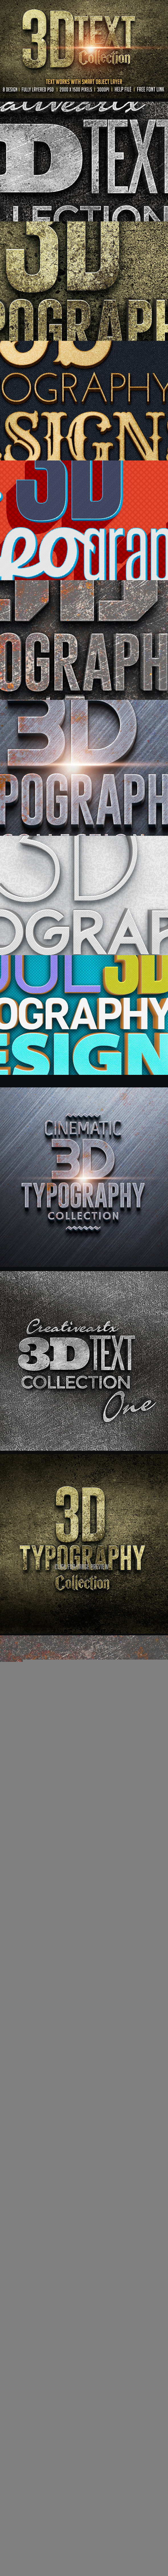 3d_text_col_1